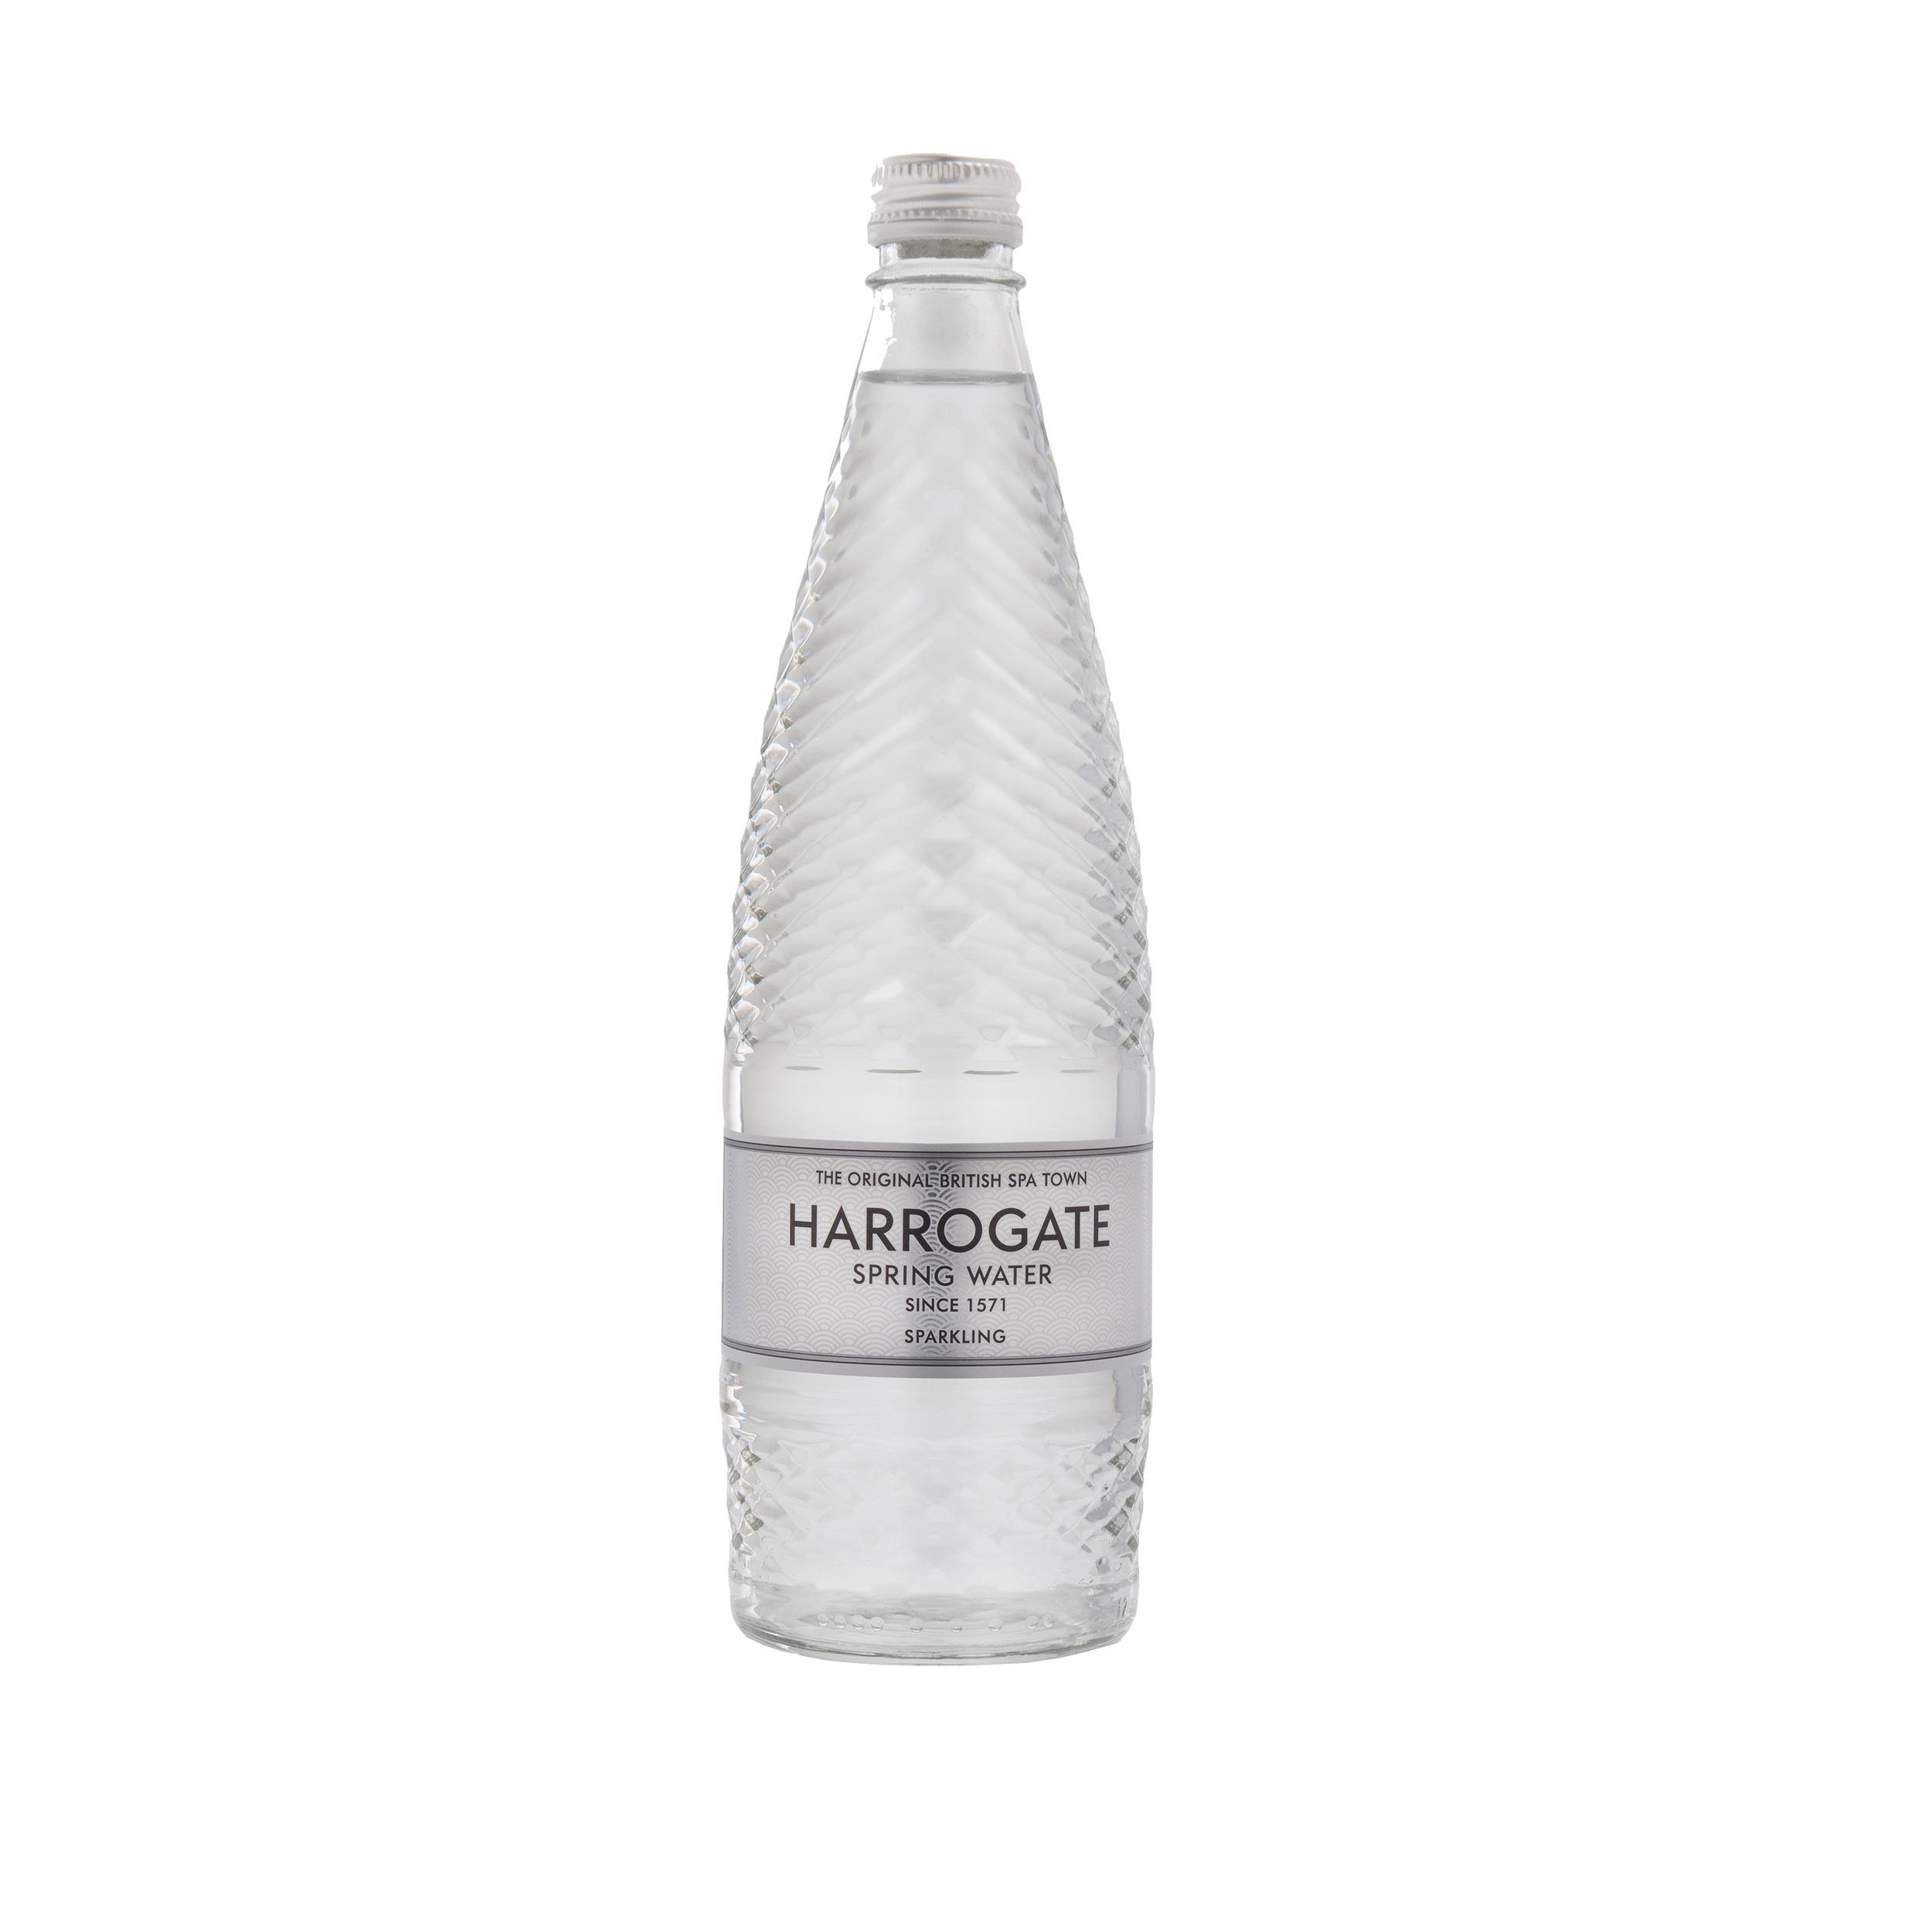 Harrogate Sparkling Water Glass Bottle 750ml Ref P750122C Pack 12